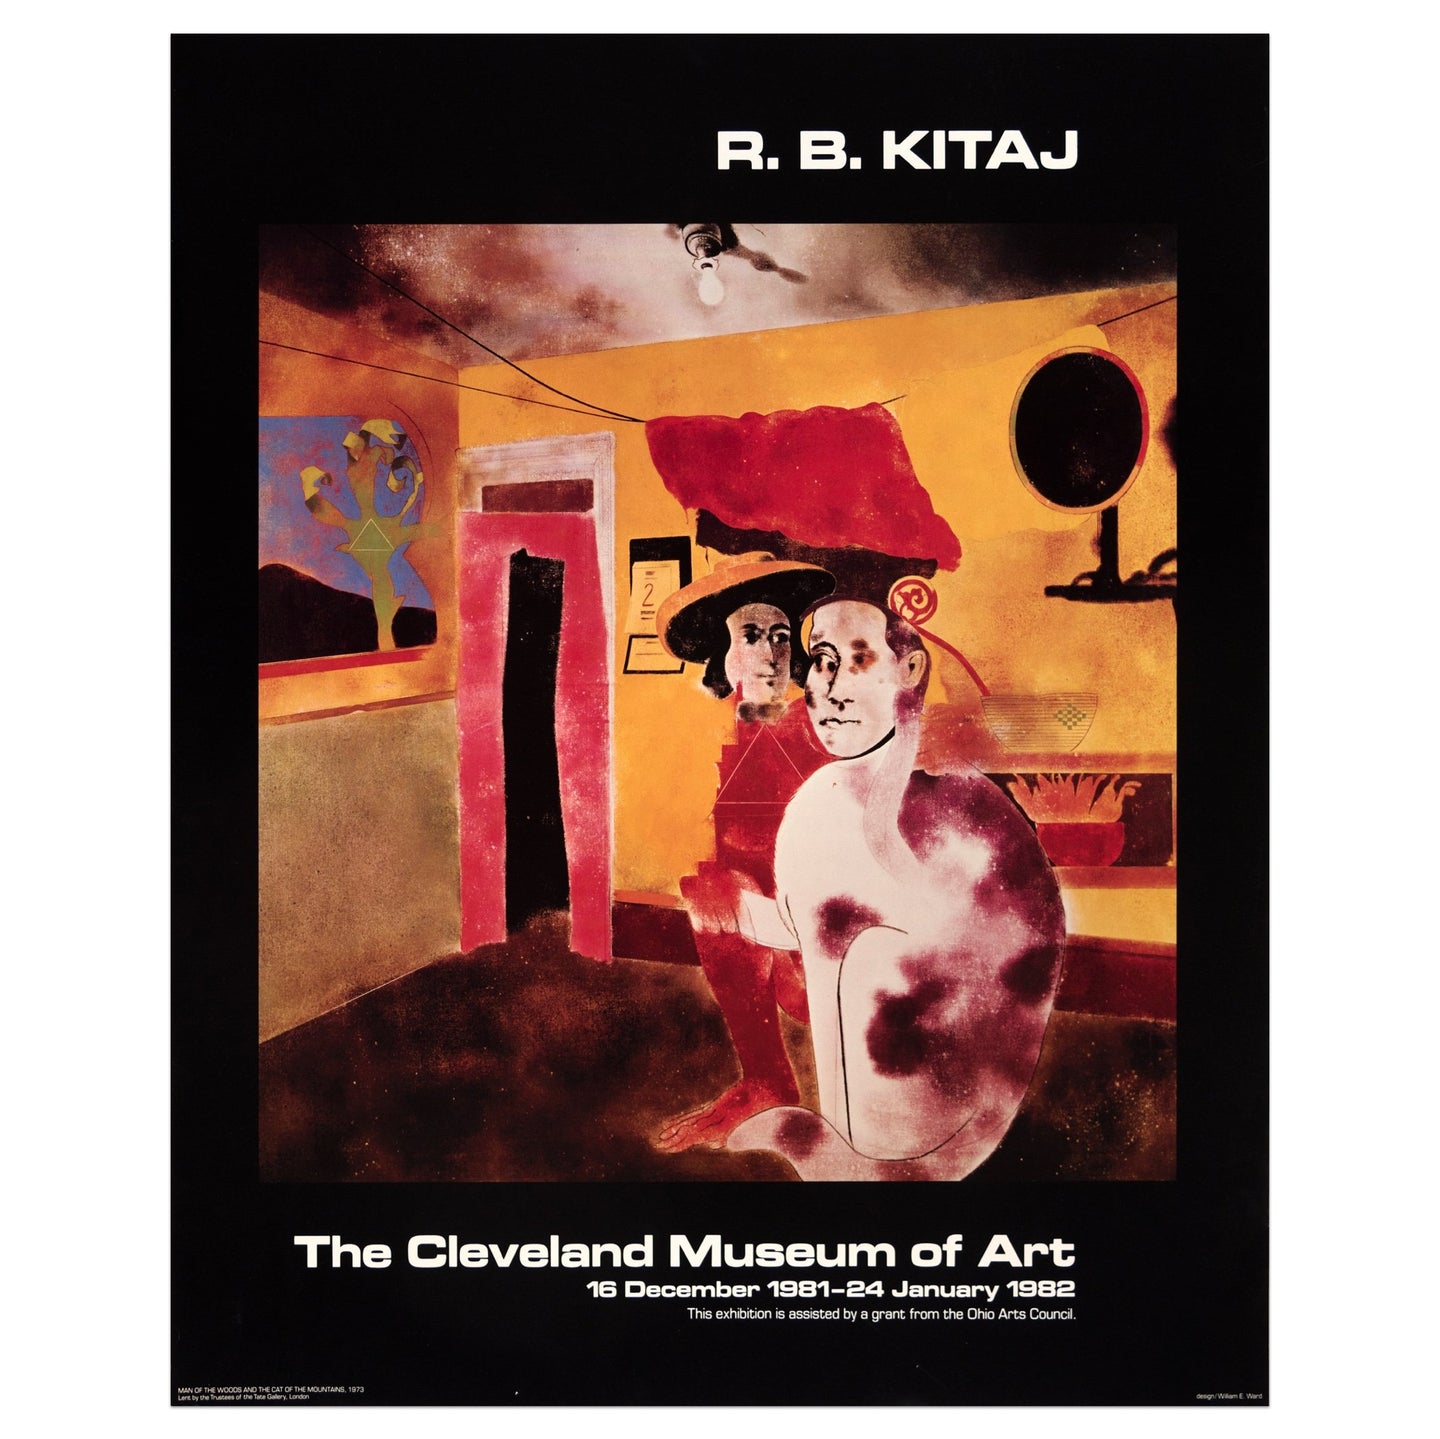 1982 The Cleveland Museum of Art poster for R.B. Kitaj featuring two human/animal figures in a predominantly yellow and orange room at night